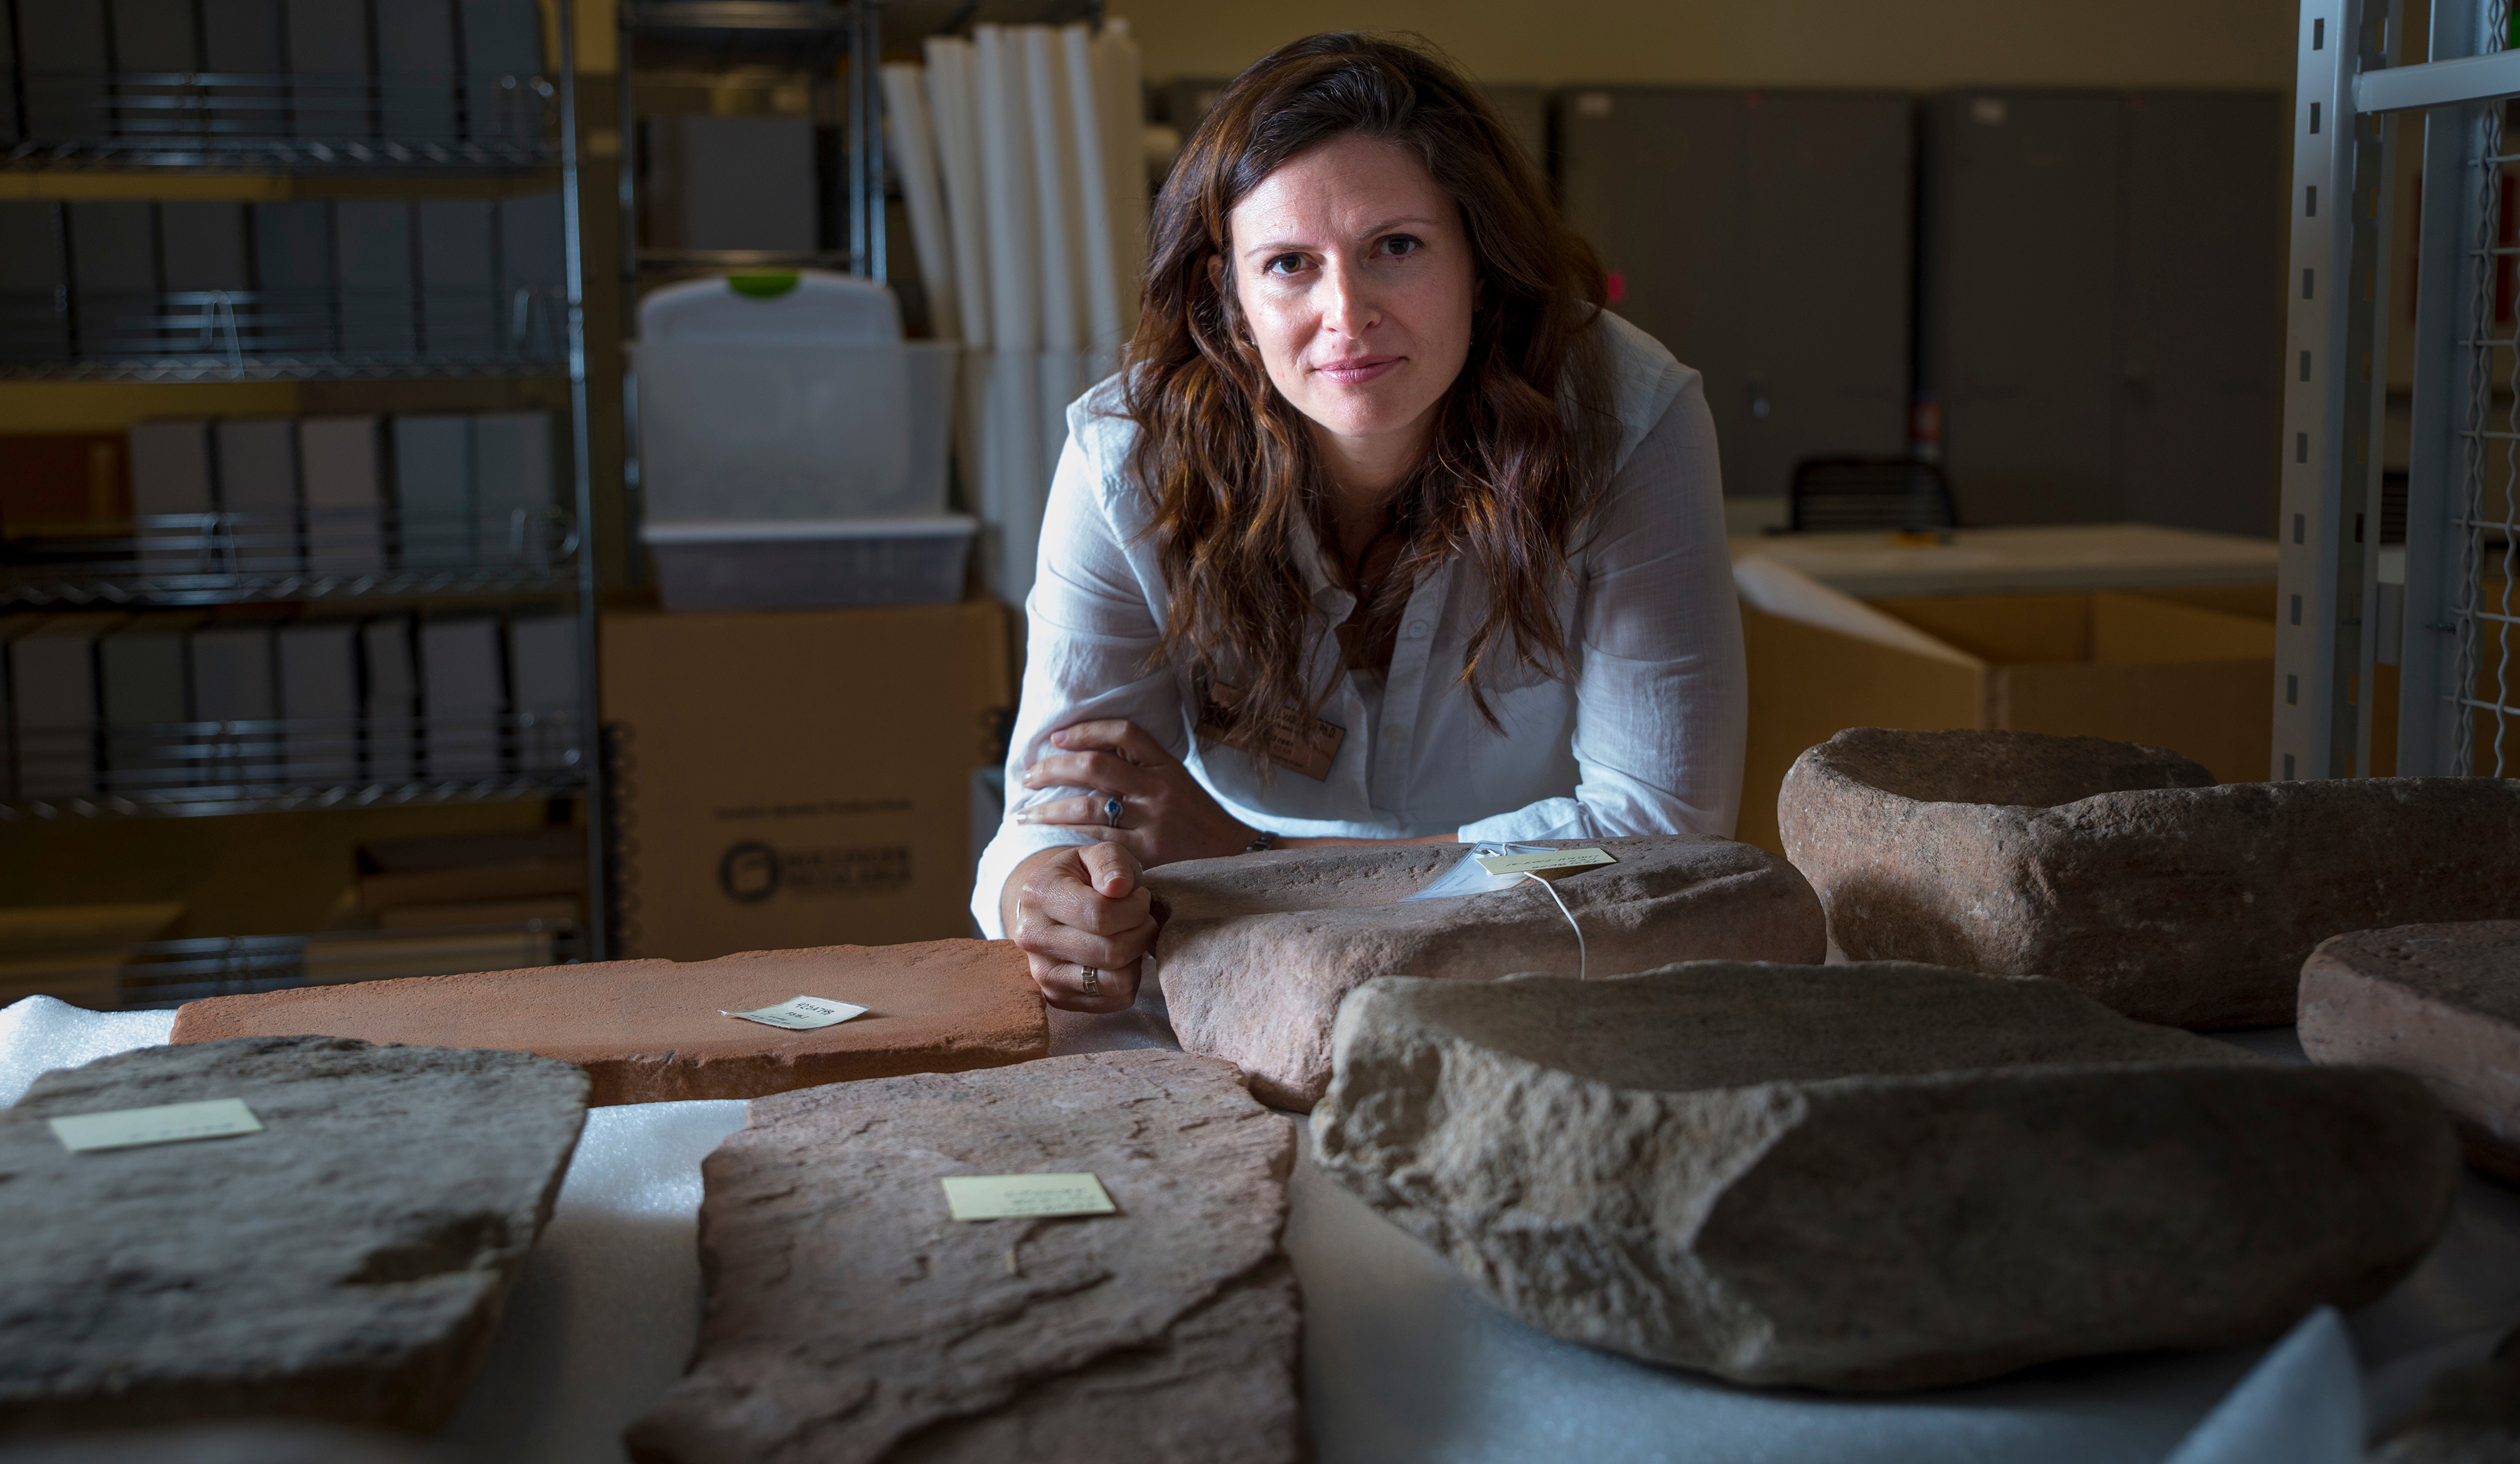 Lisbeth Louderback, assistant professor of anthropology and curator of archaeology at the Natural History Museum of Utah, stands behind large stone metates, the grindstones on which ancient Native Americans processed their food.